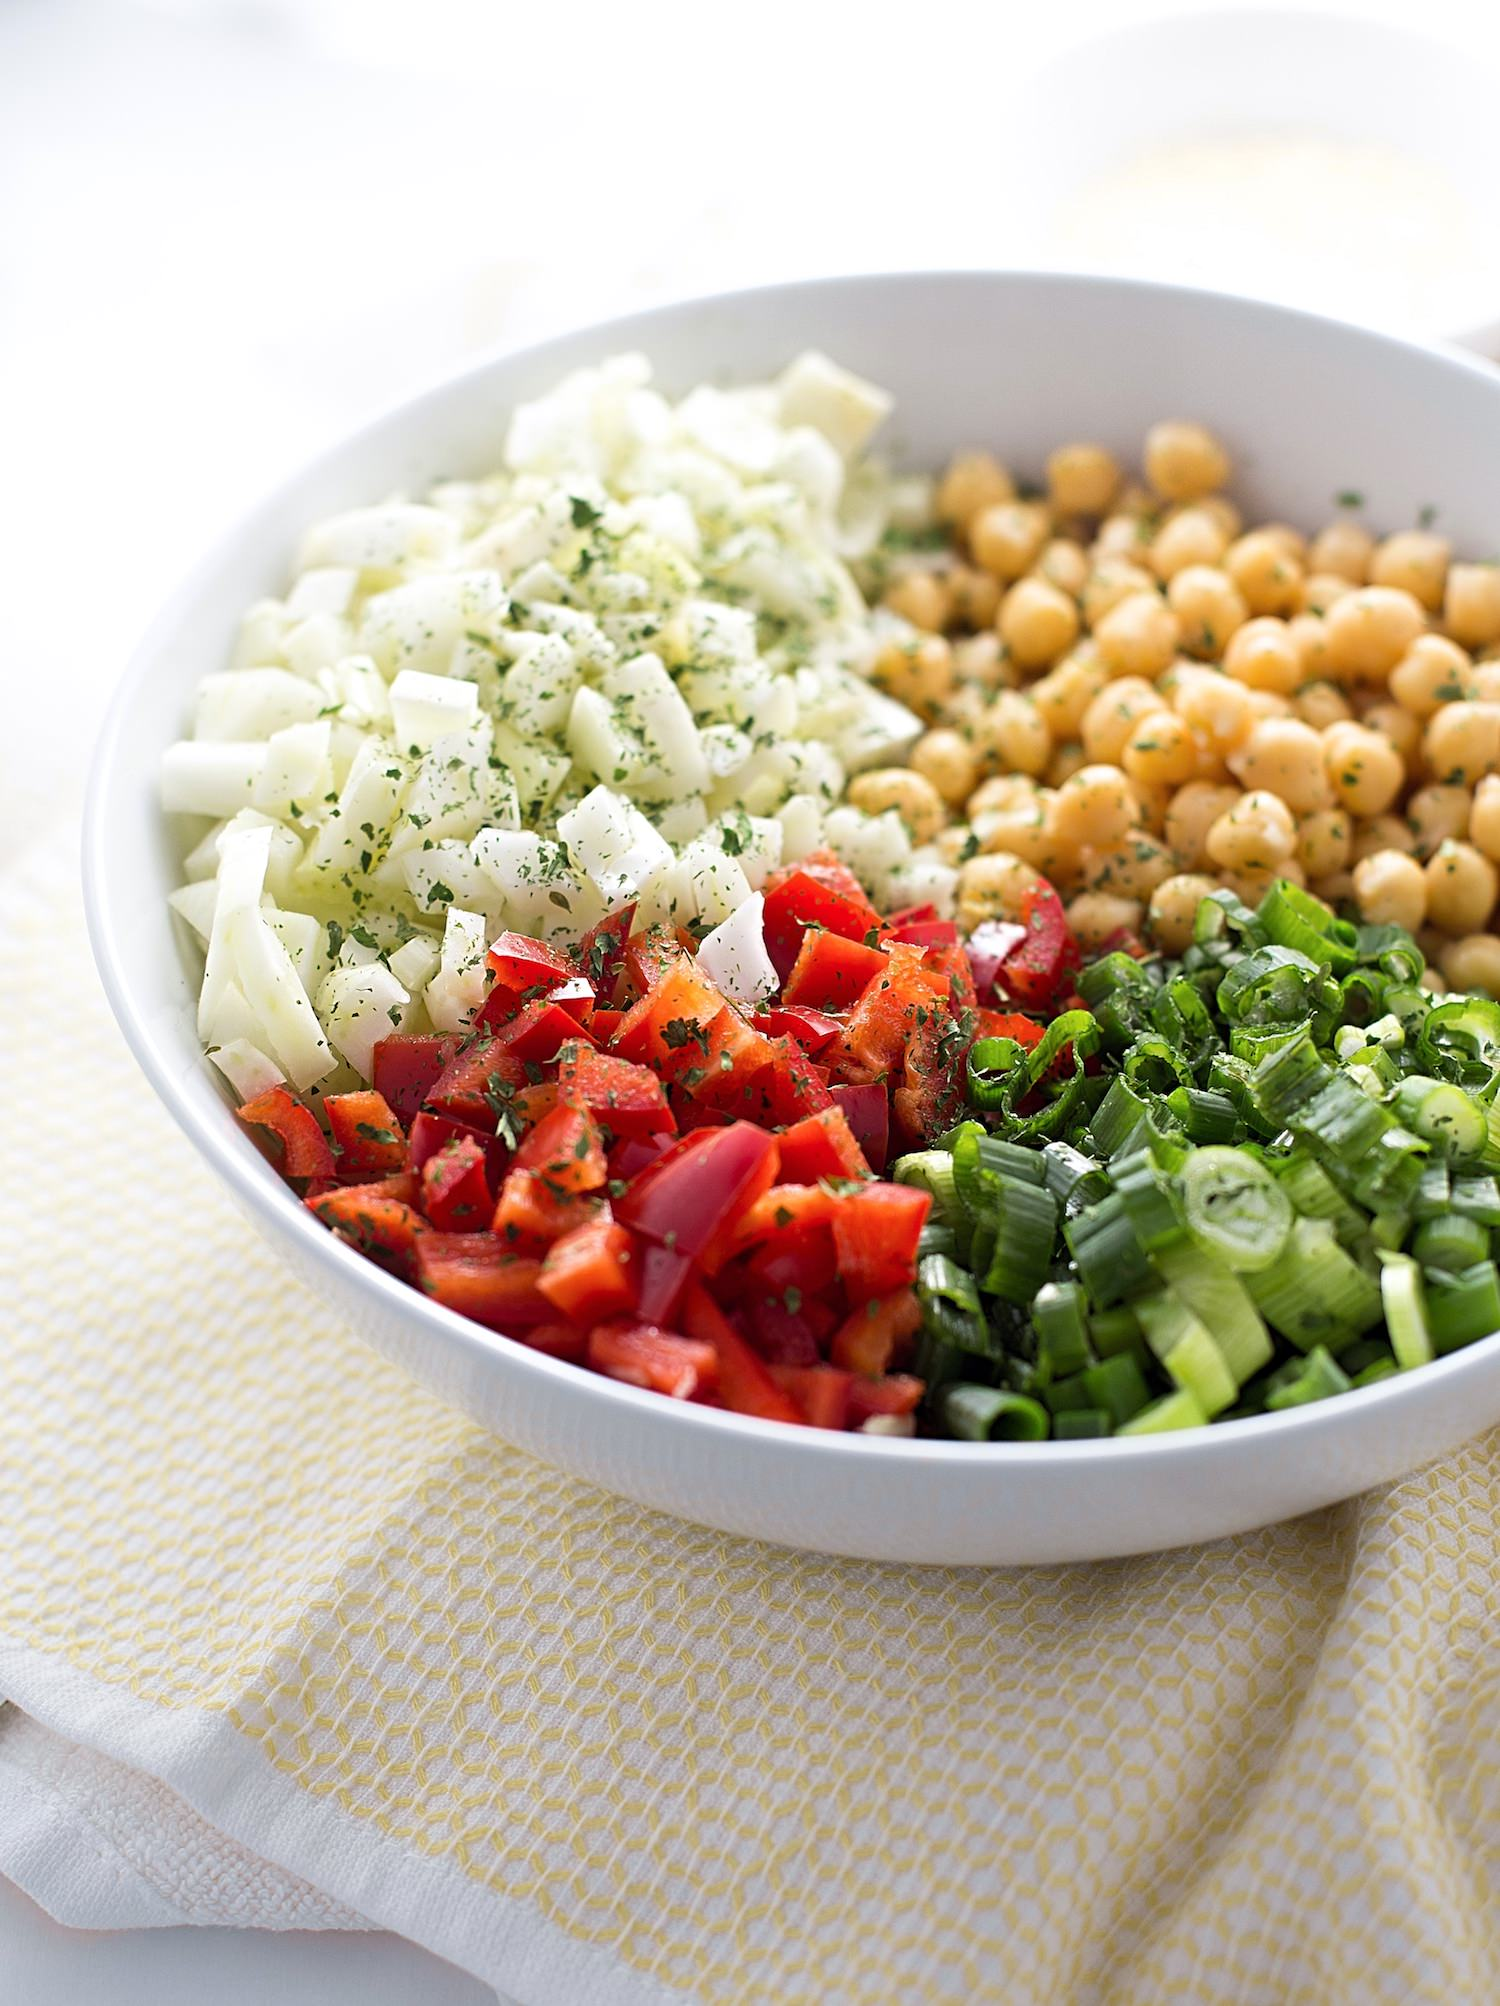 Chickpea Fennel Red Pepper Salad: chickpeas, fennel, red peppers, scallions, and Parmesan cheese tossed in an olive oil-cumin dressing. So quick and nutritious! | TrufflesandTrends.com